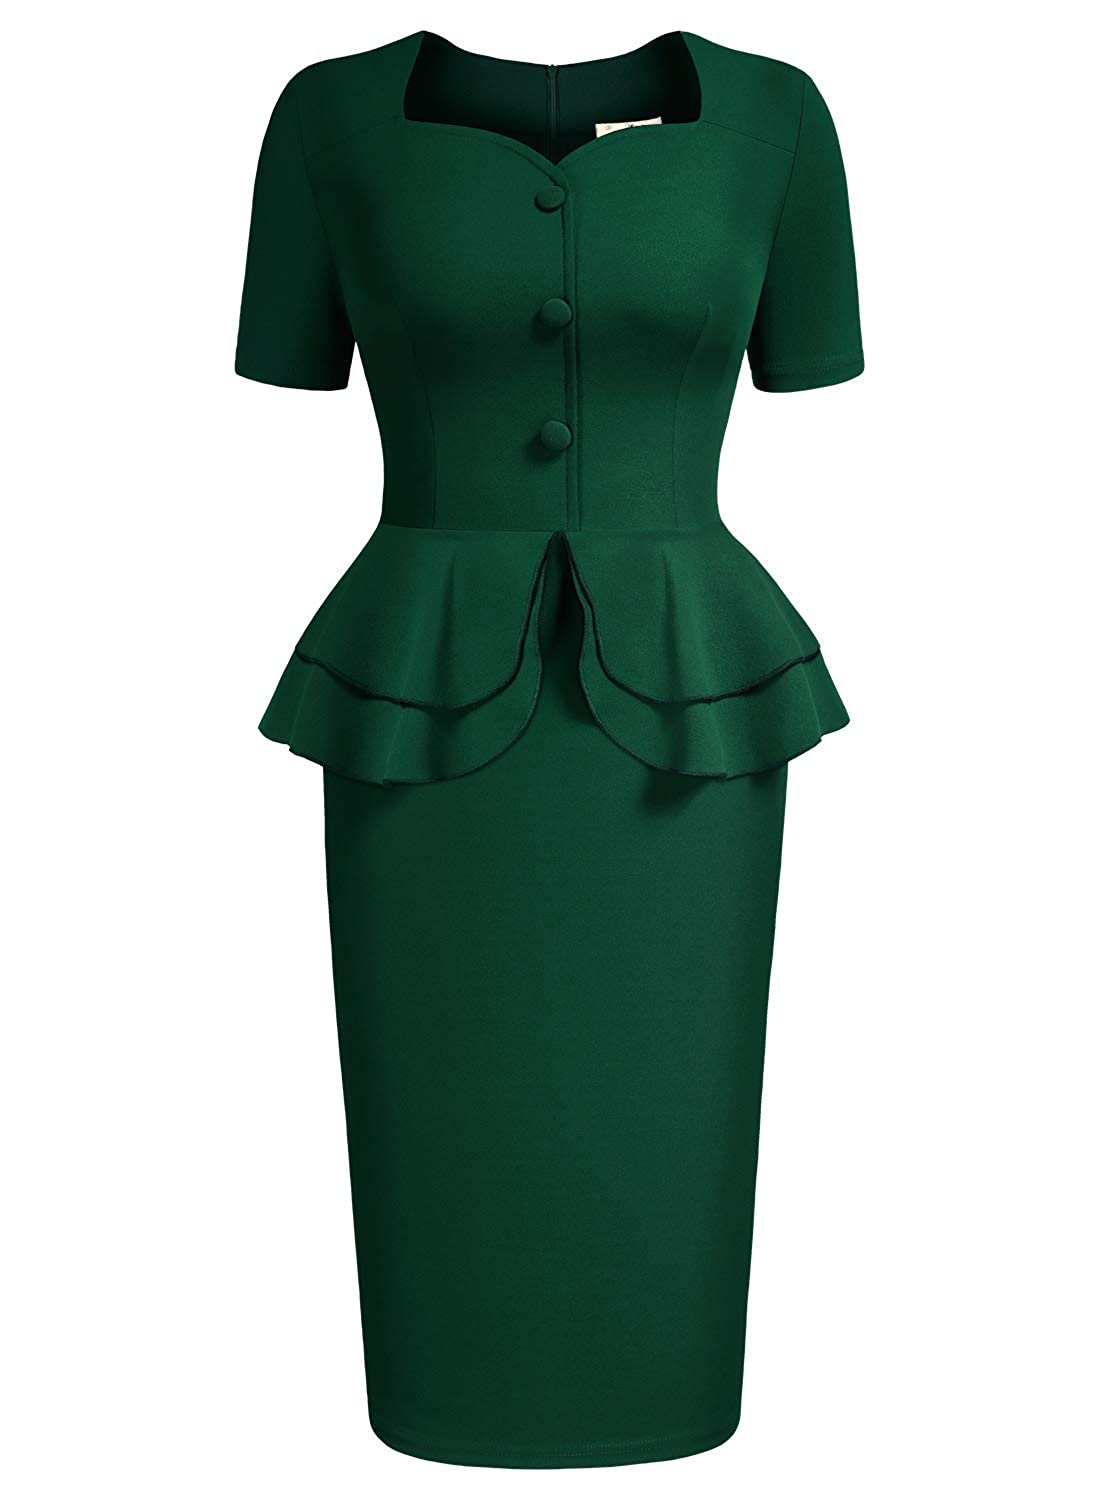 1940s Dresses | 40s Dress, Swing Dress AISIZE Women 1940s Vintage Sweetheart Ruffles Peplum Dress $34.99 AT vintagedancer.com